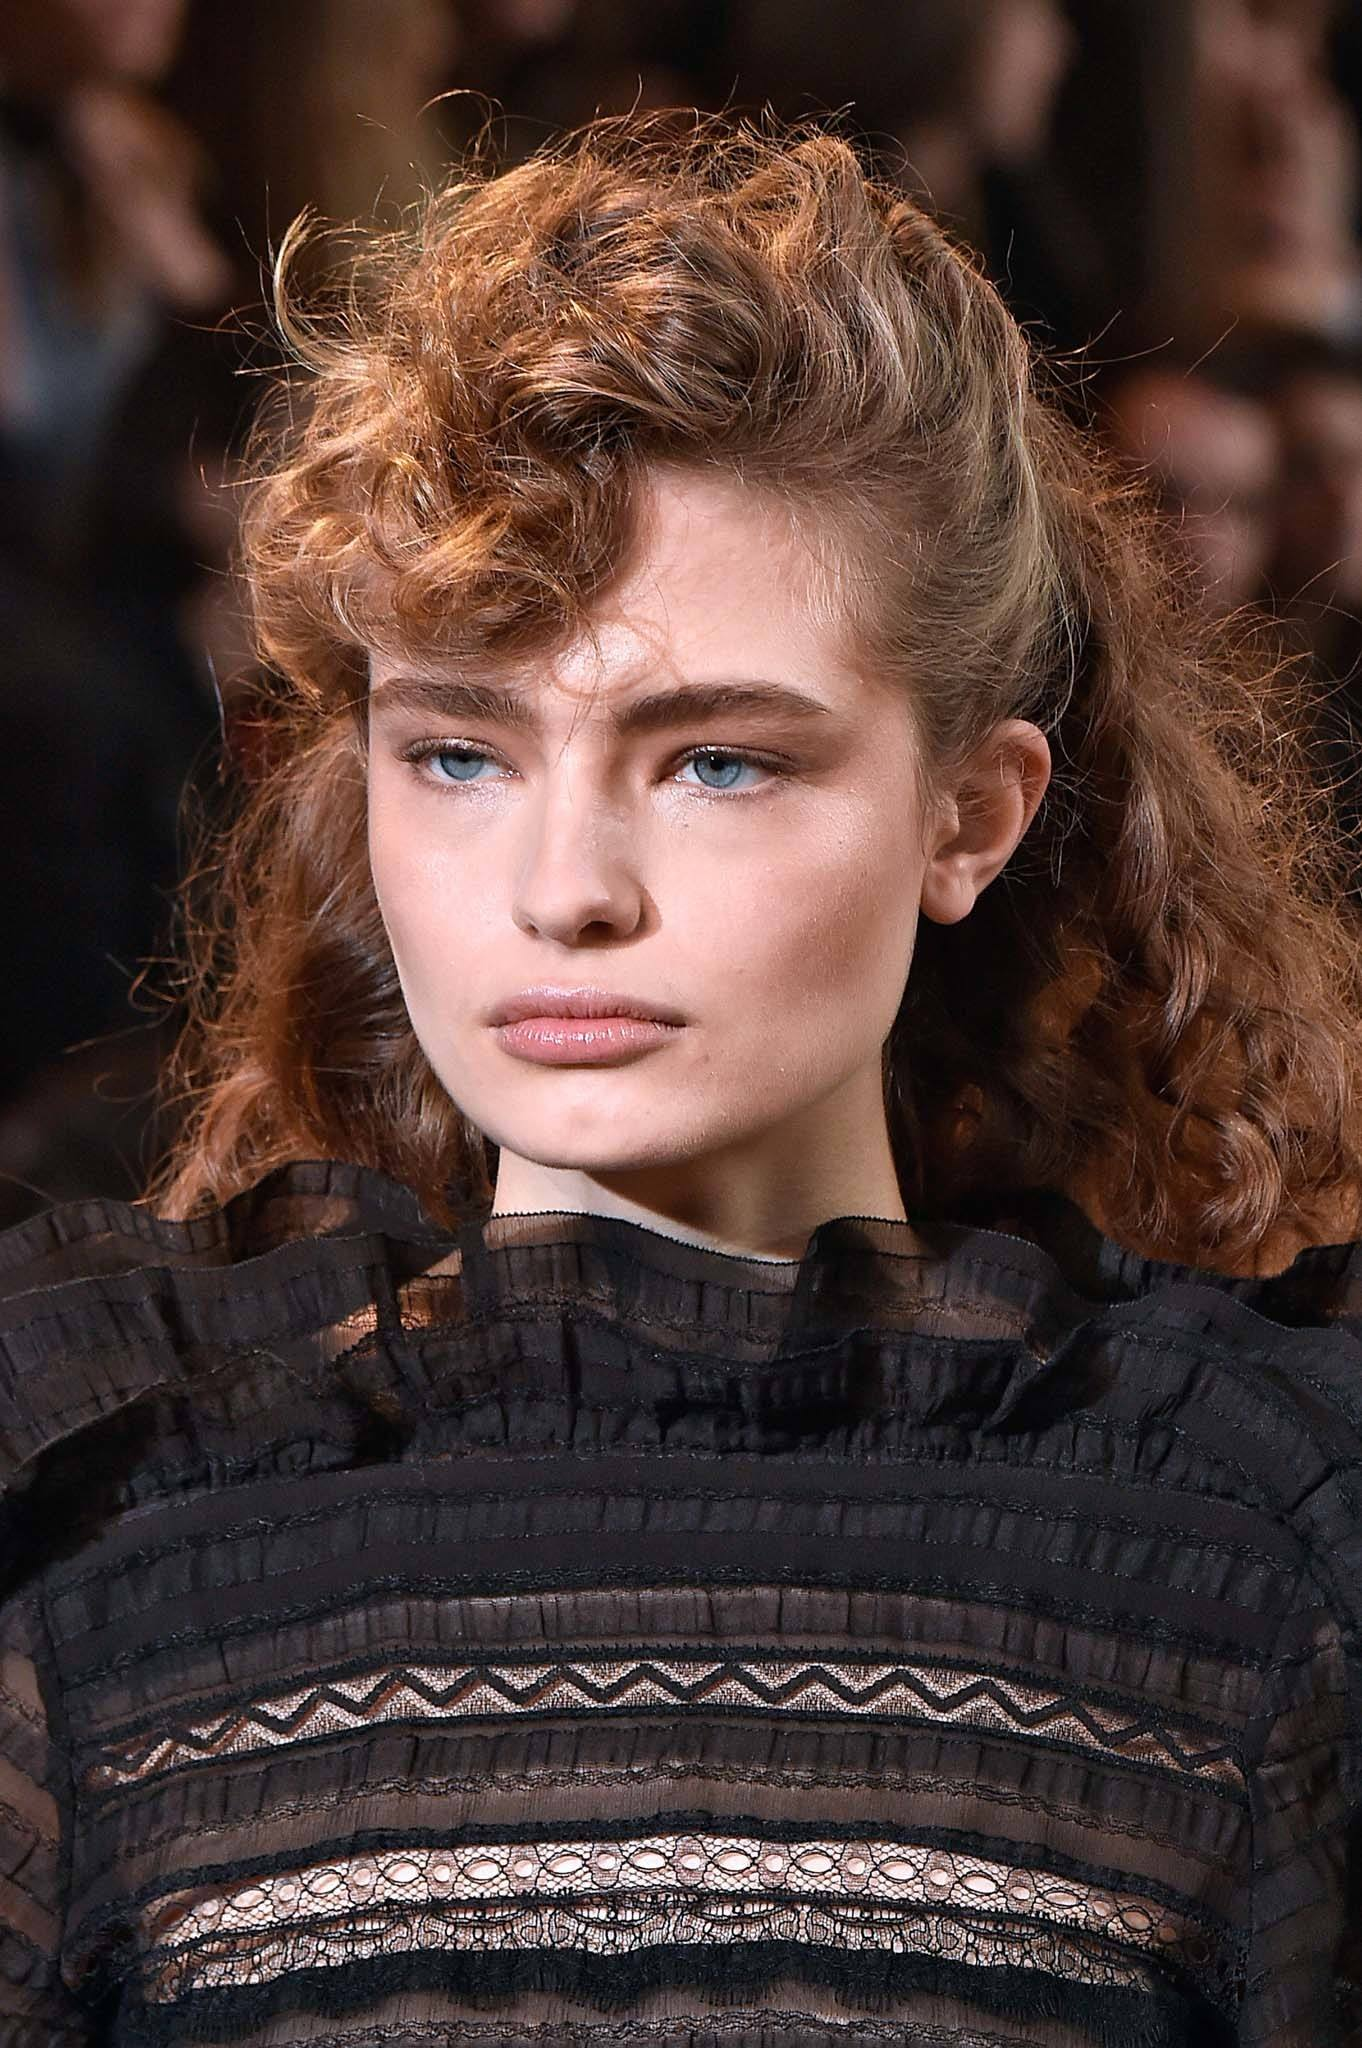 Retro hairstyles: Close up shot of a woman with light brown naturally curly hair styled into fauxhawk walking on the Isabel Marant runway